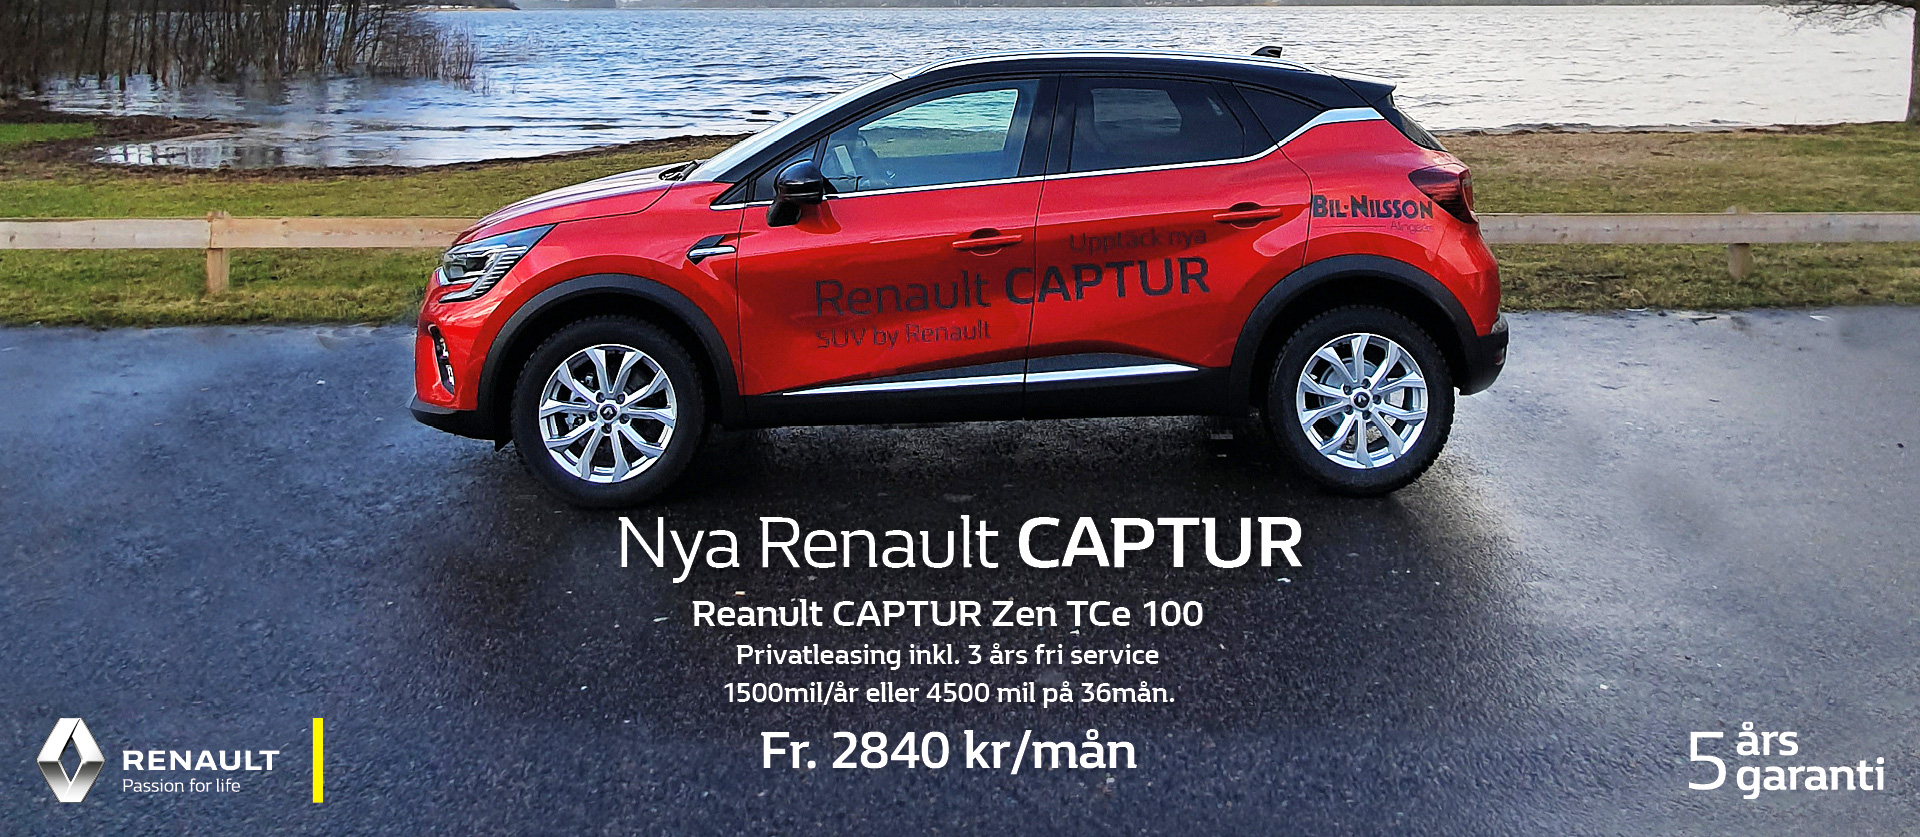 Kampanj Renault Captur privatleasing